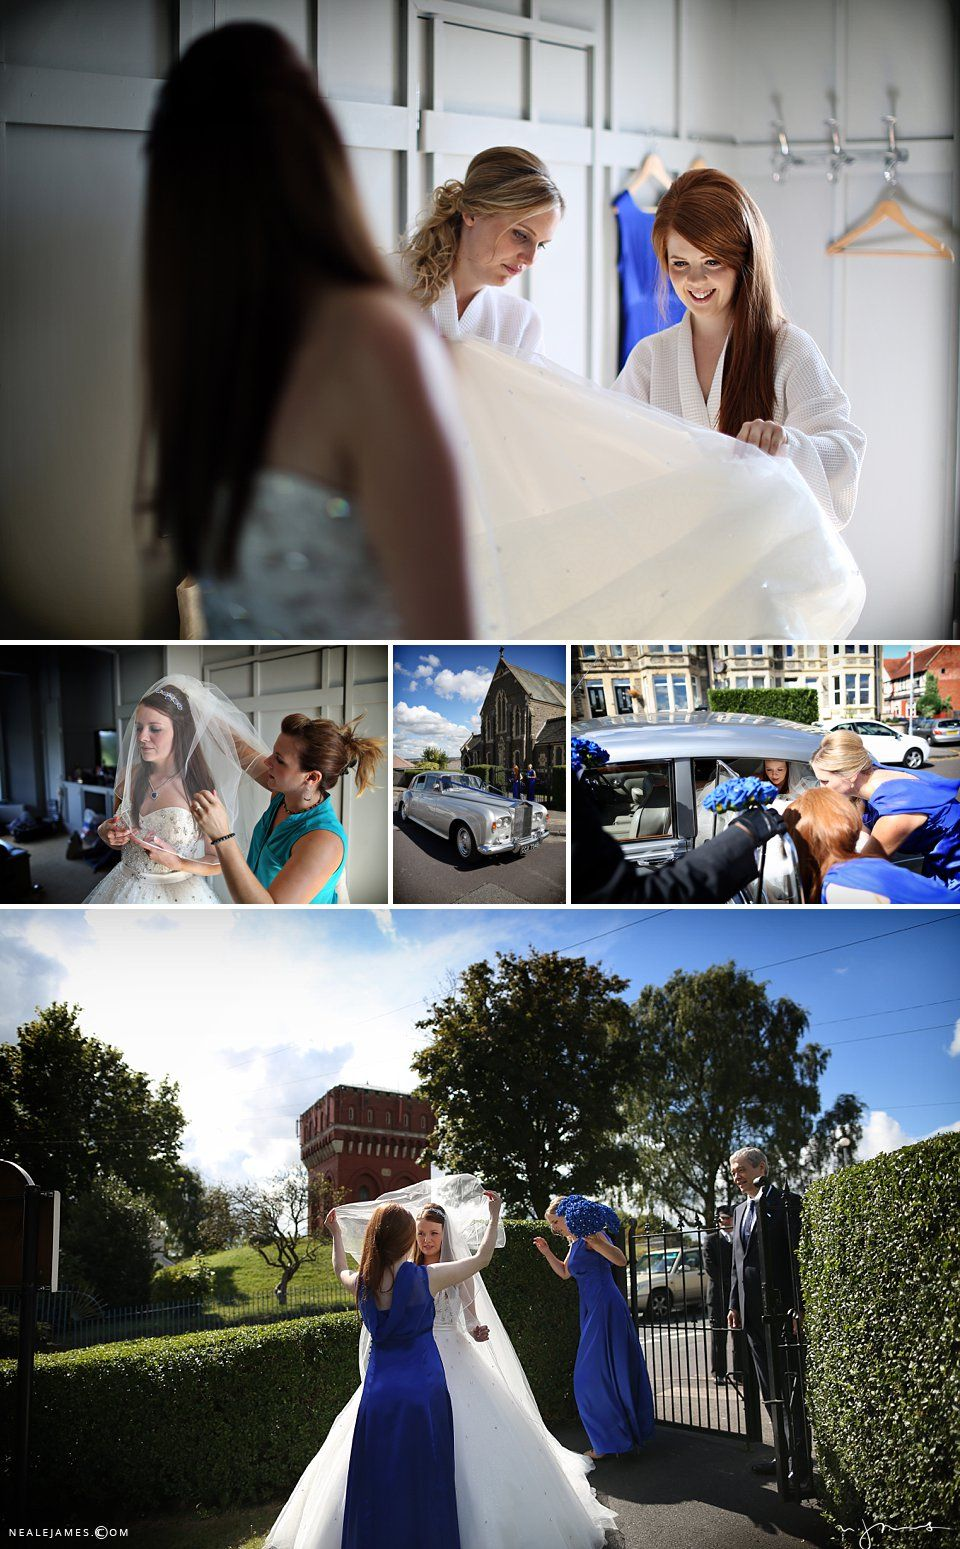 Wedding celebrations on a gorgeous summers day in Bristol